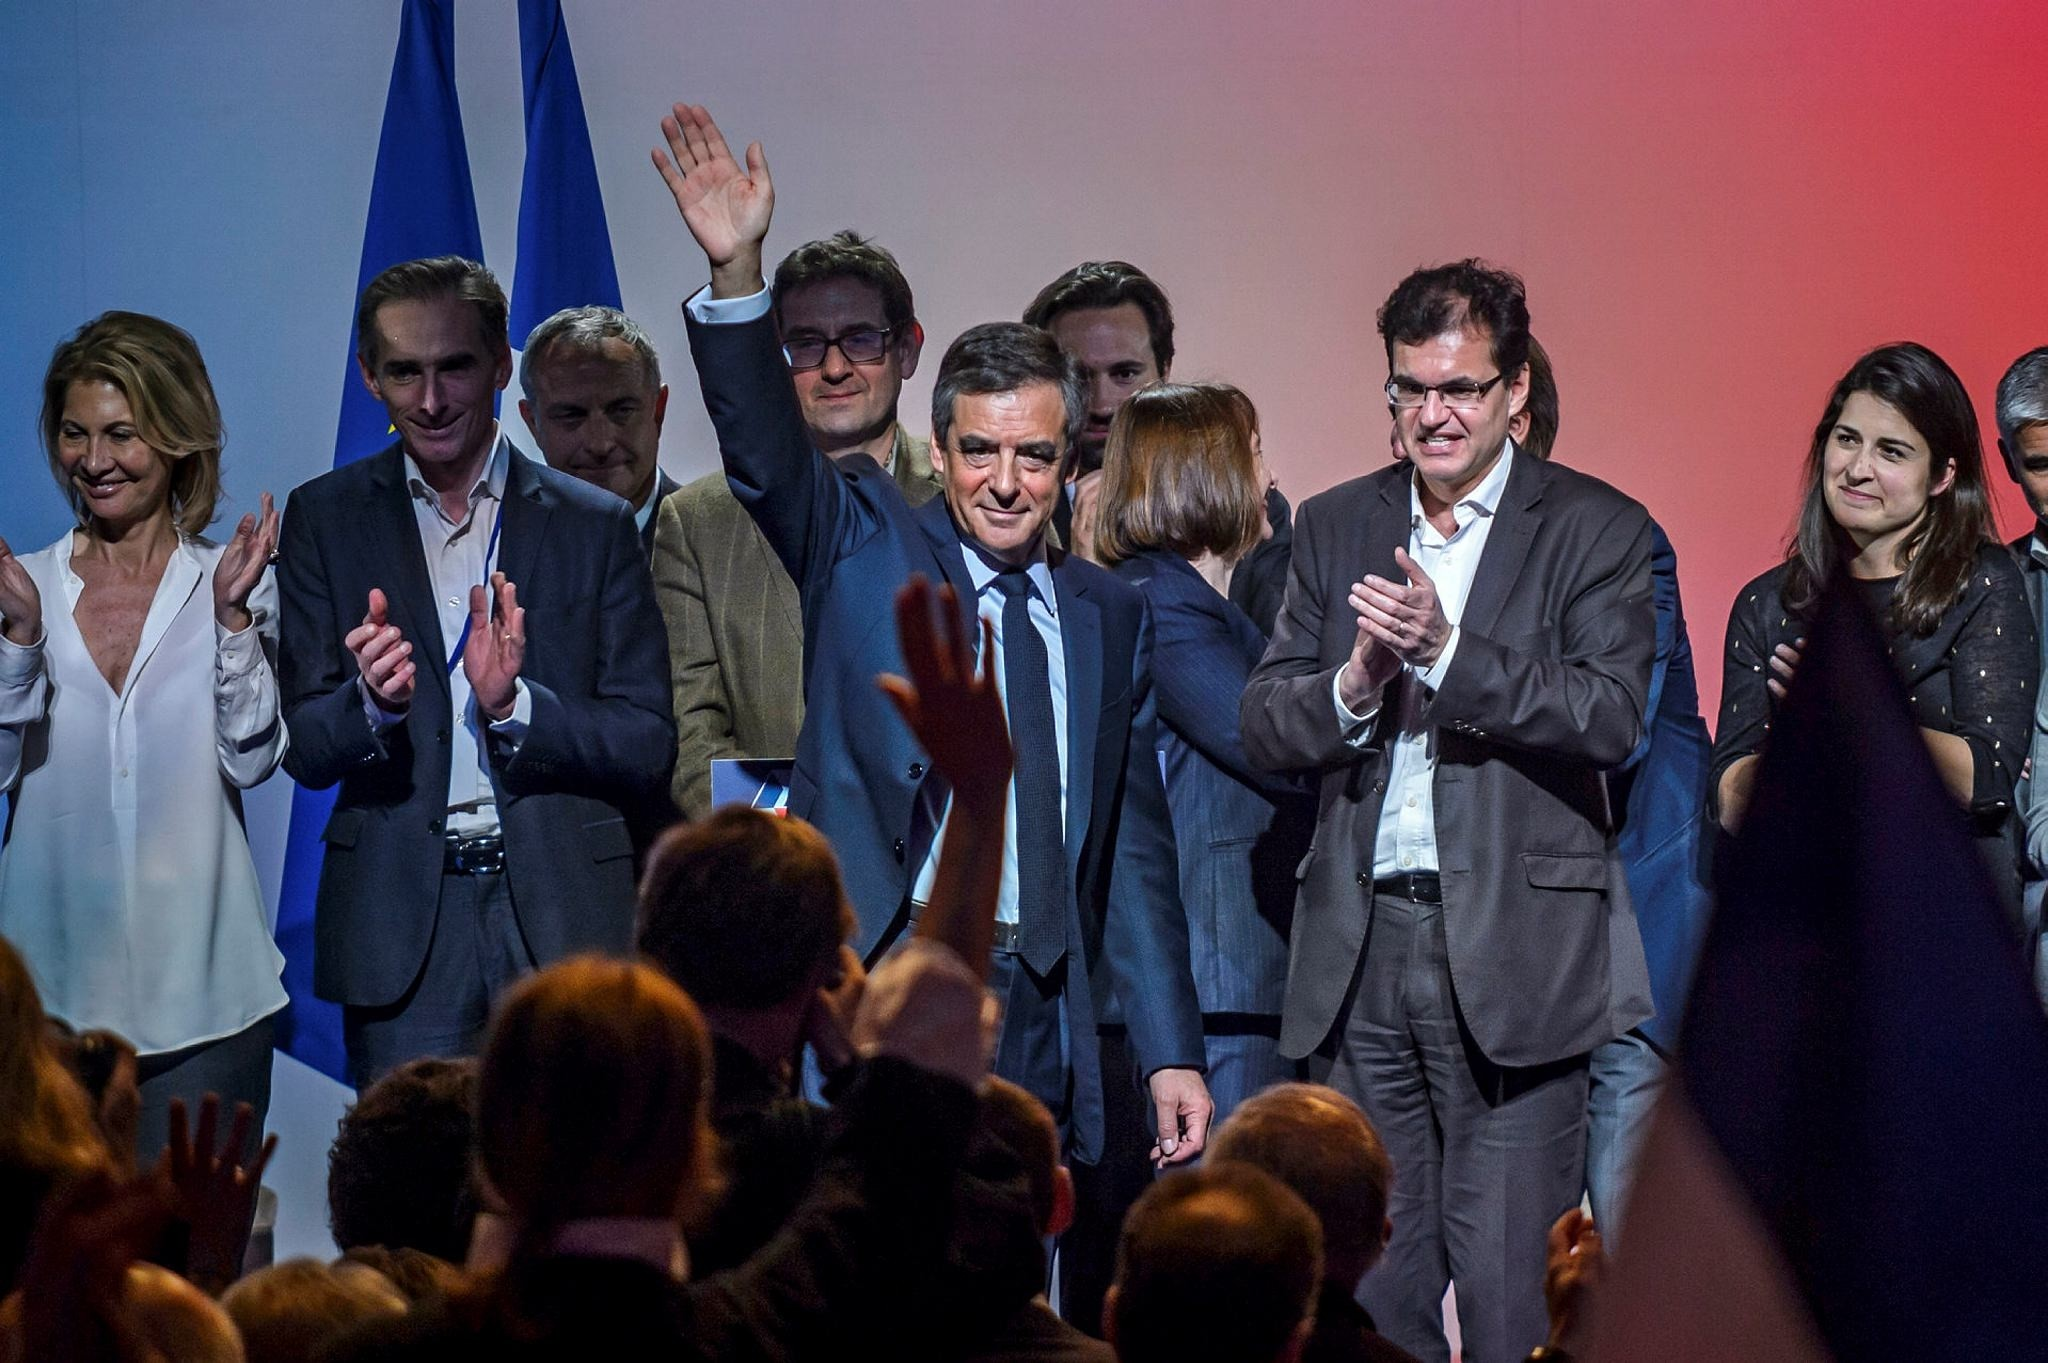 Francois Fillon waves after delivering a speech during a campaign event in Aubervilliers, near Paris, France, 04 March 2017. (EPA Photo)